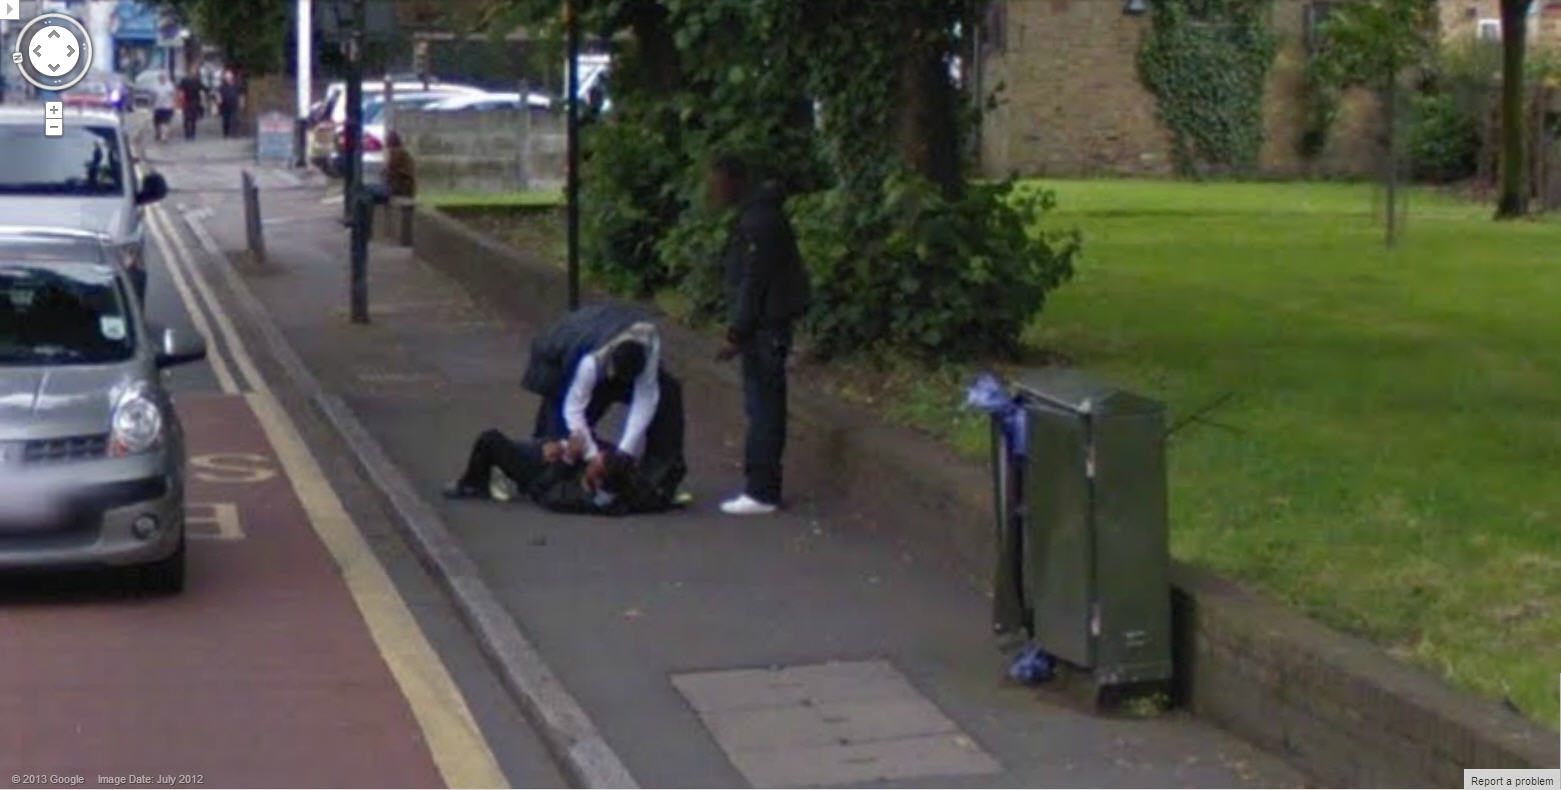 Guy getting Beat Up on Google Street View